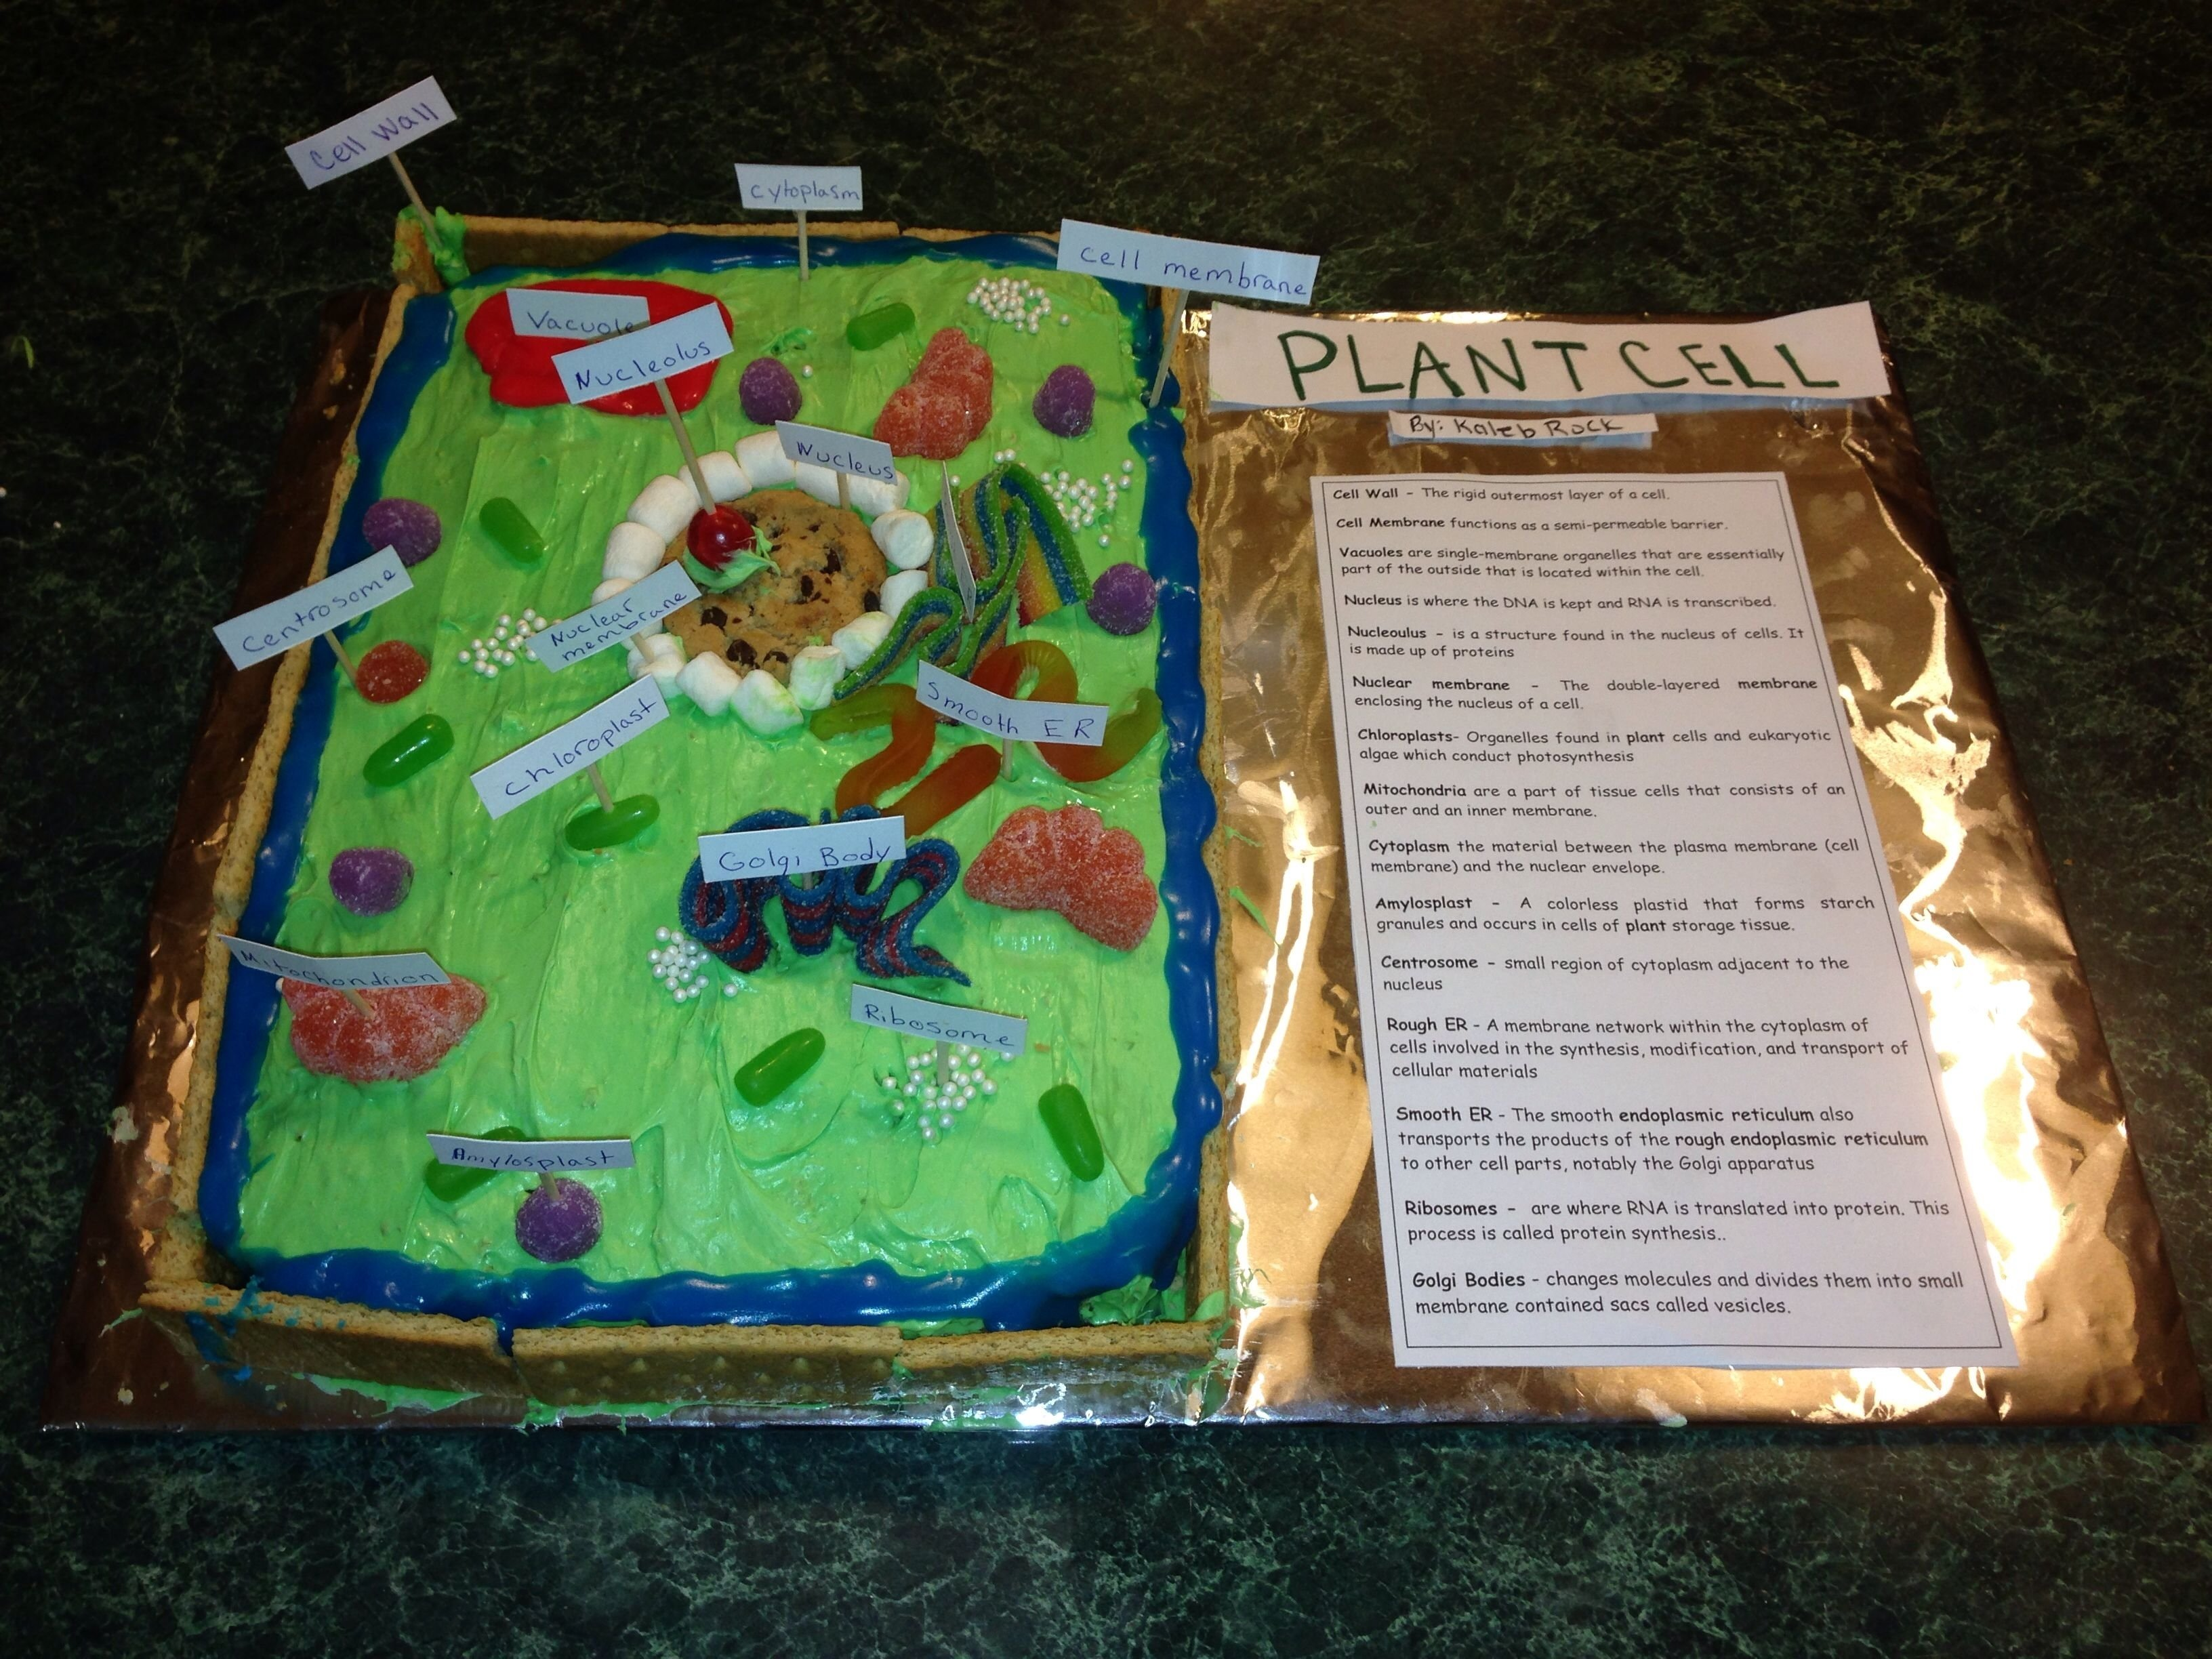 10 Stylish Plant Cell 3D Model Ideas edible plant cell 5th grade project learning pinterest plant 2020